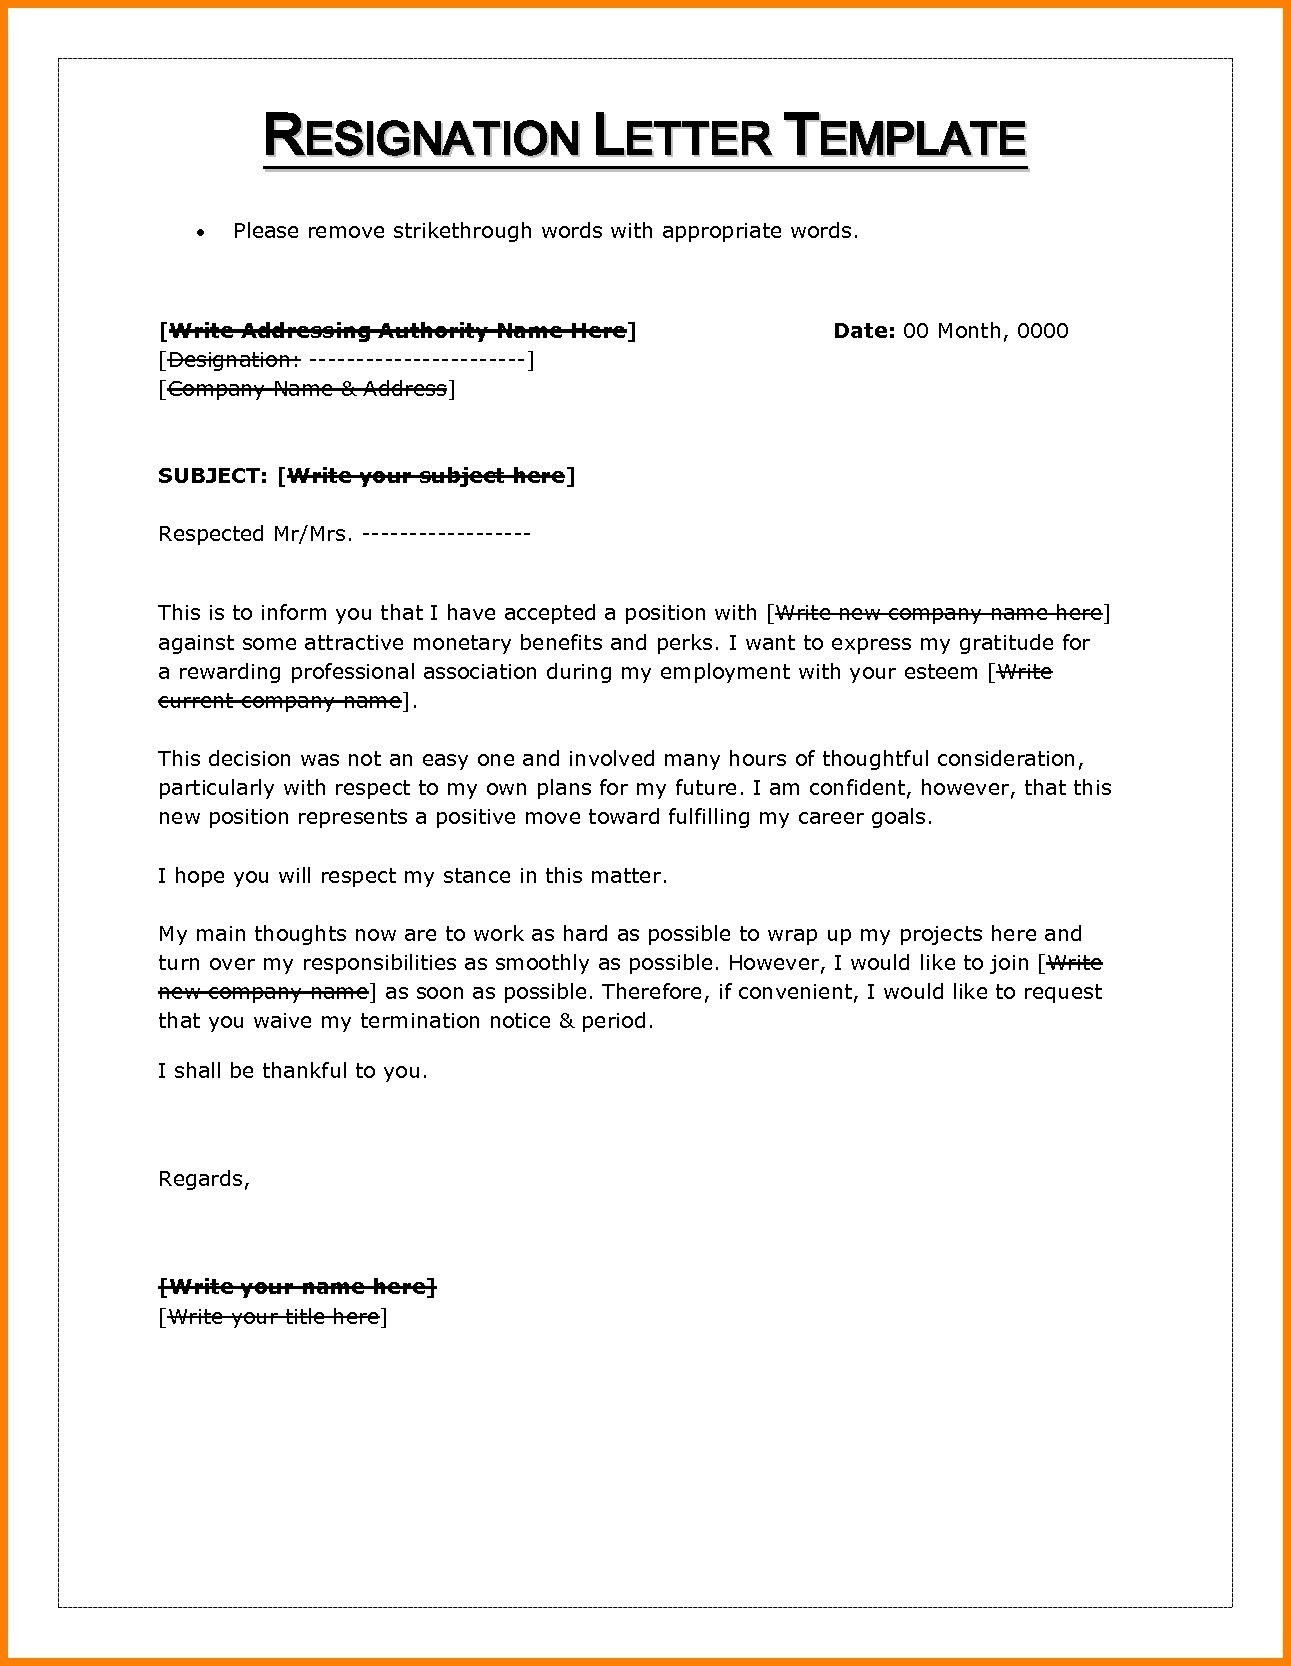 Standard Resignation Letter Template Word - Absence From School Letter Bagnas Leave Of Absence Letter